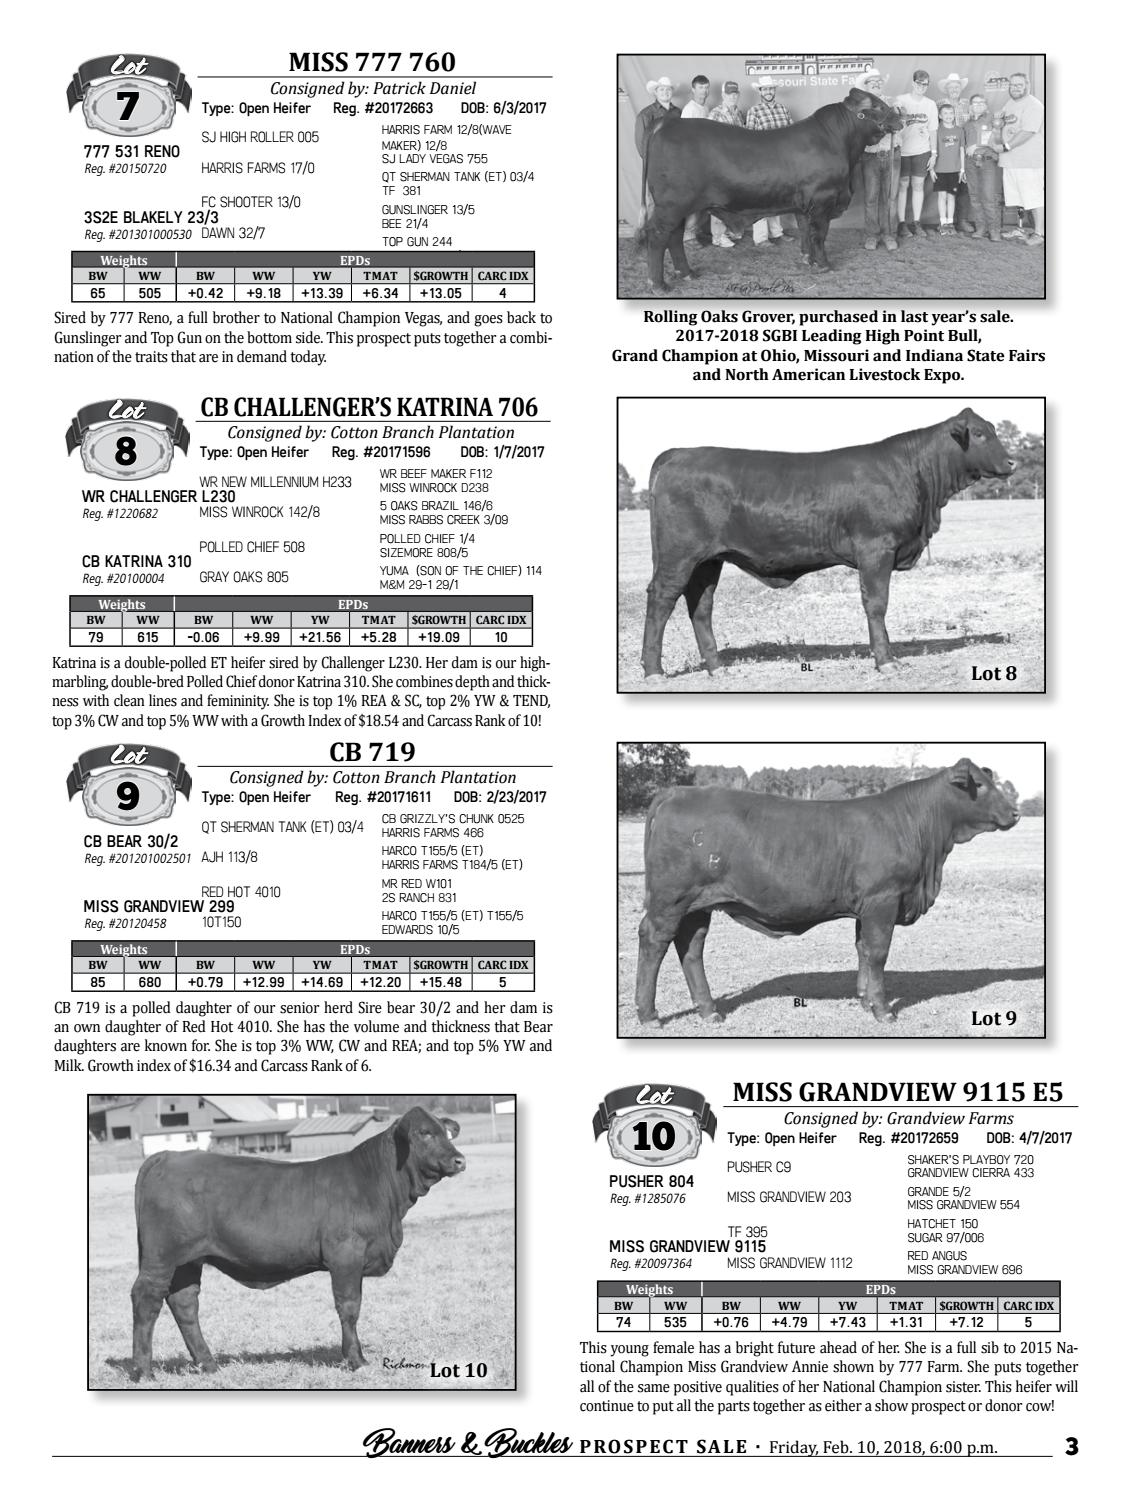 Banners and Buckles Santa Gertrudis Prospect Sale by Cattle In